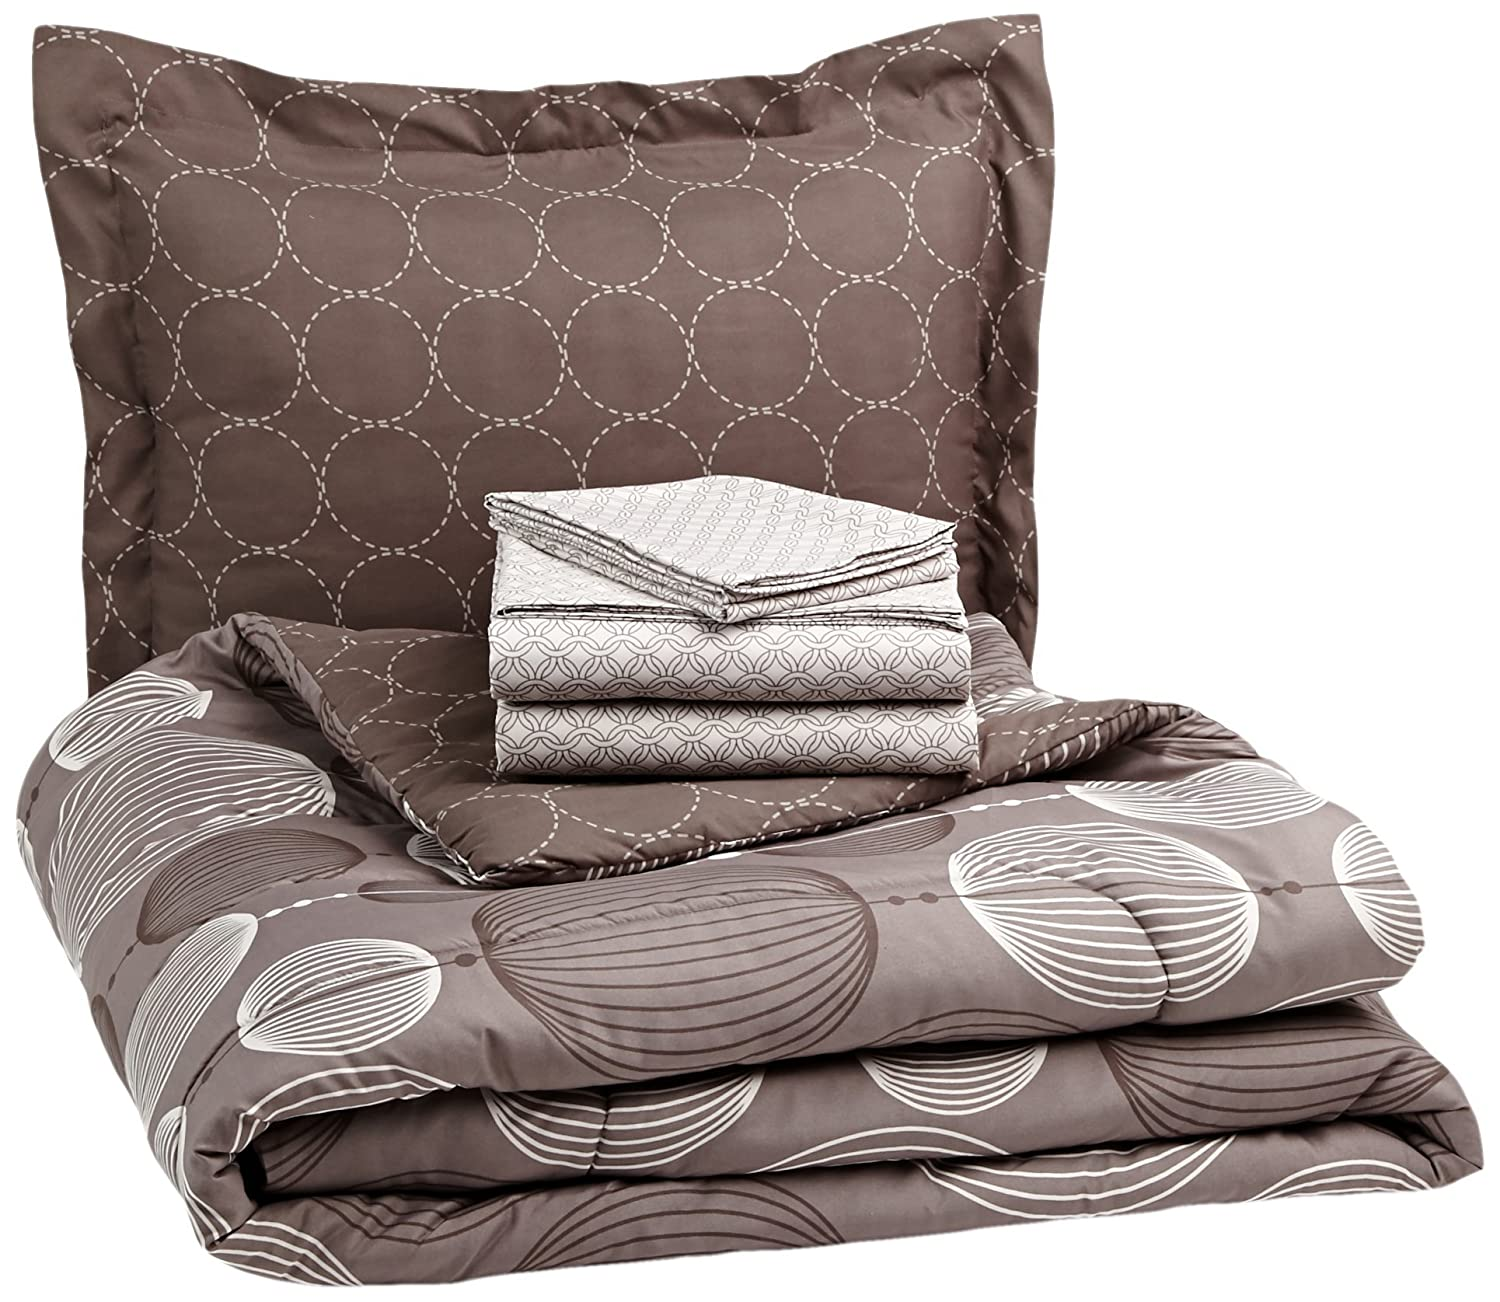 Amazonbasics Bedding Sets With More Ease Bedding With Style